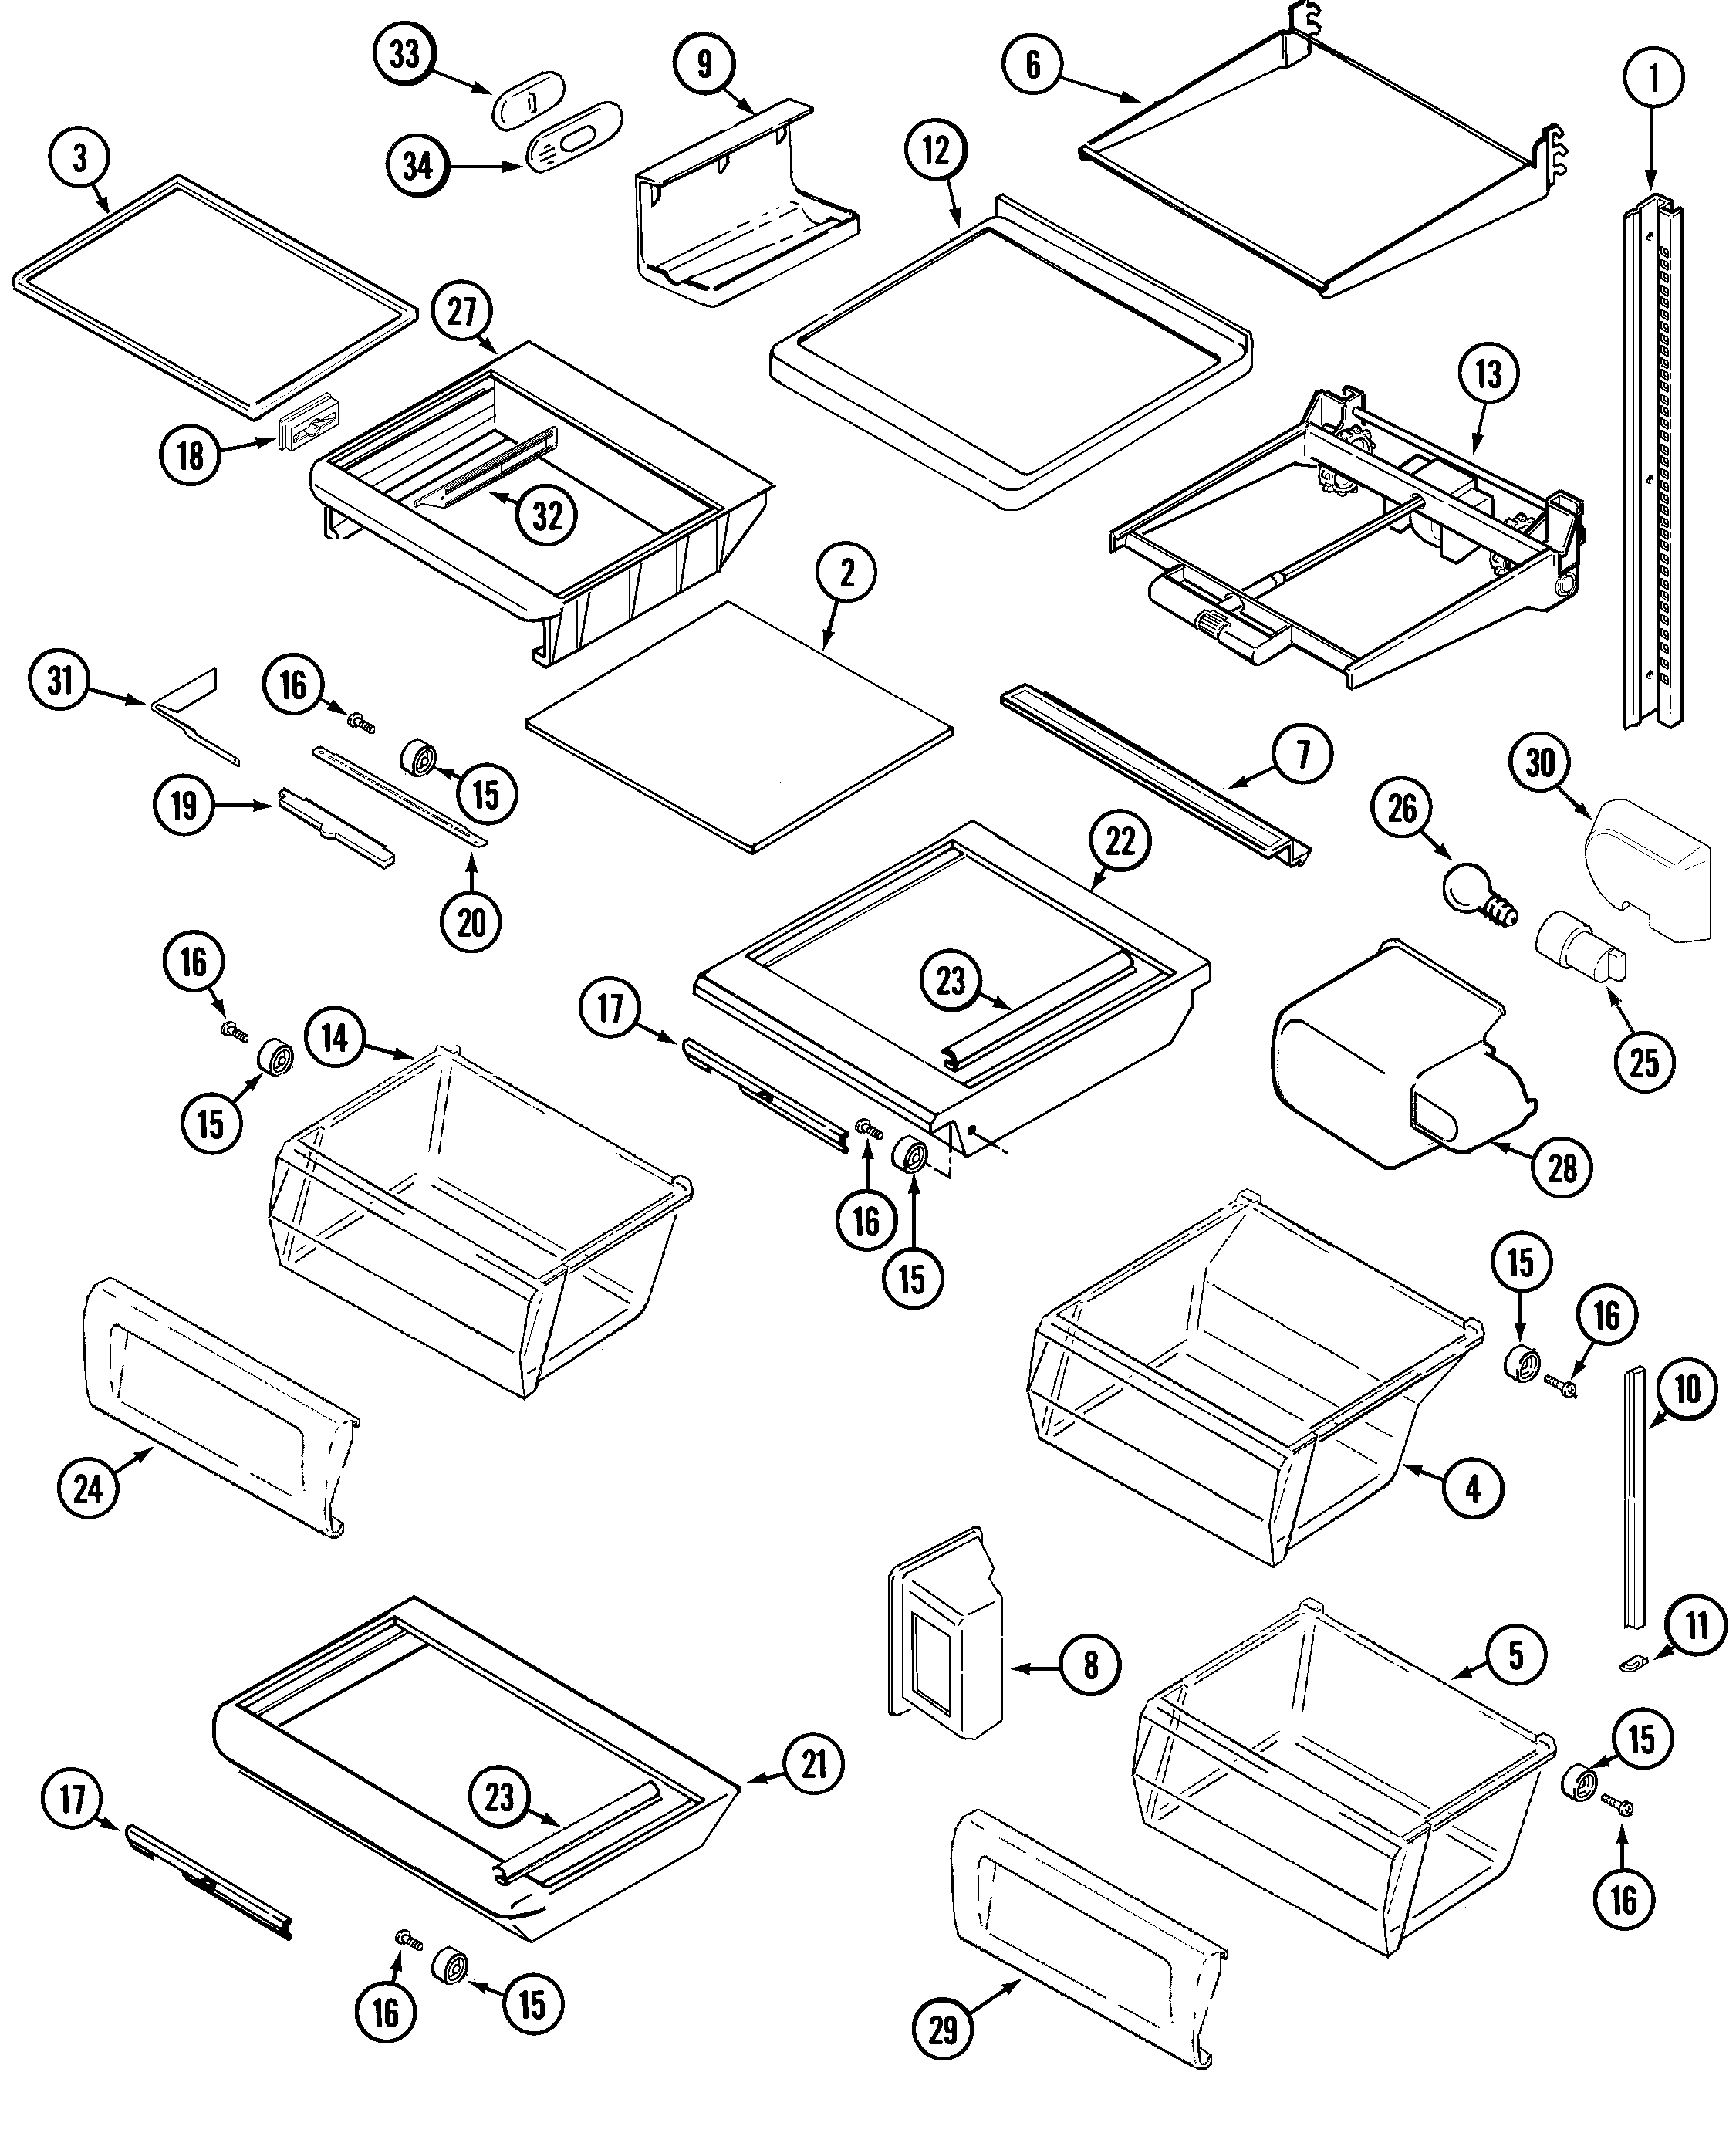 Maytag GC2228EED9 shelves & accessories diagram